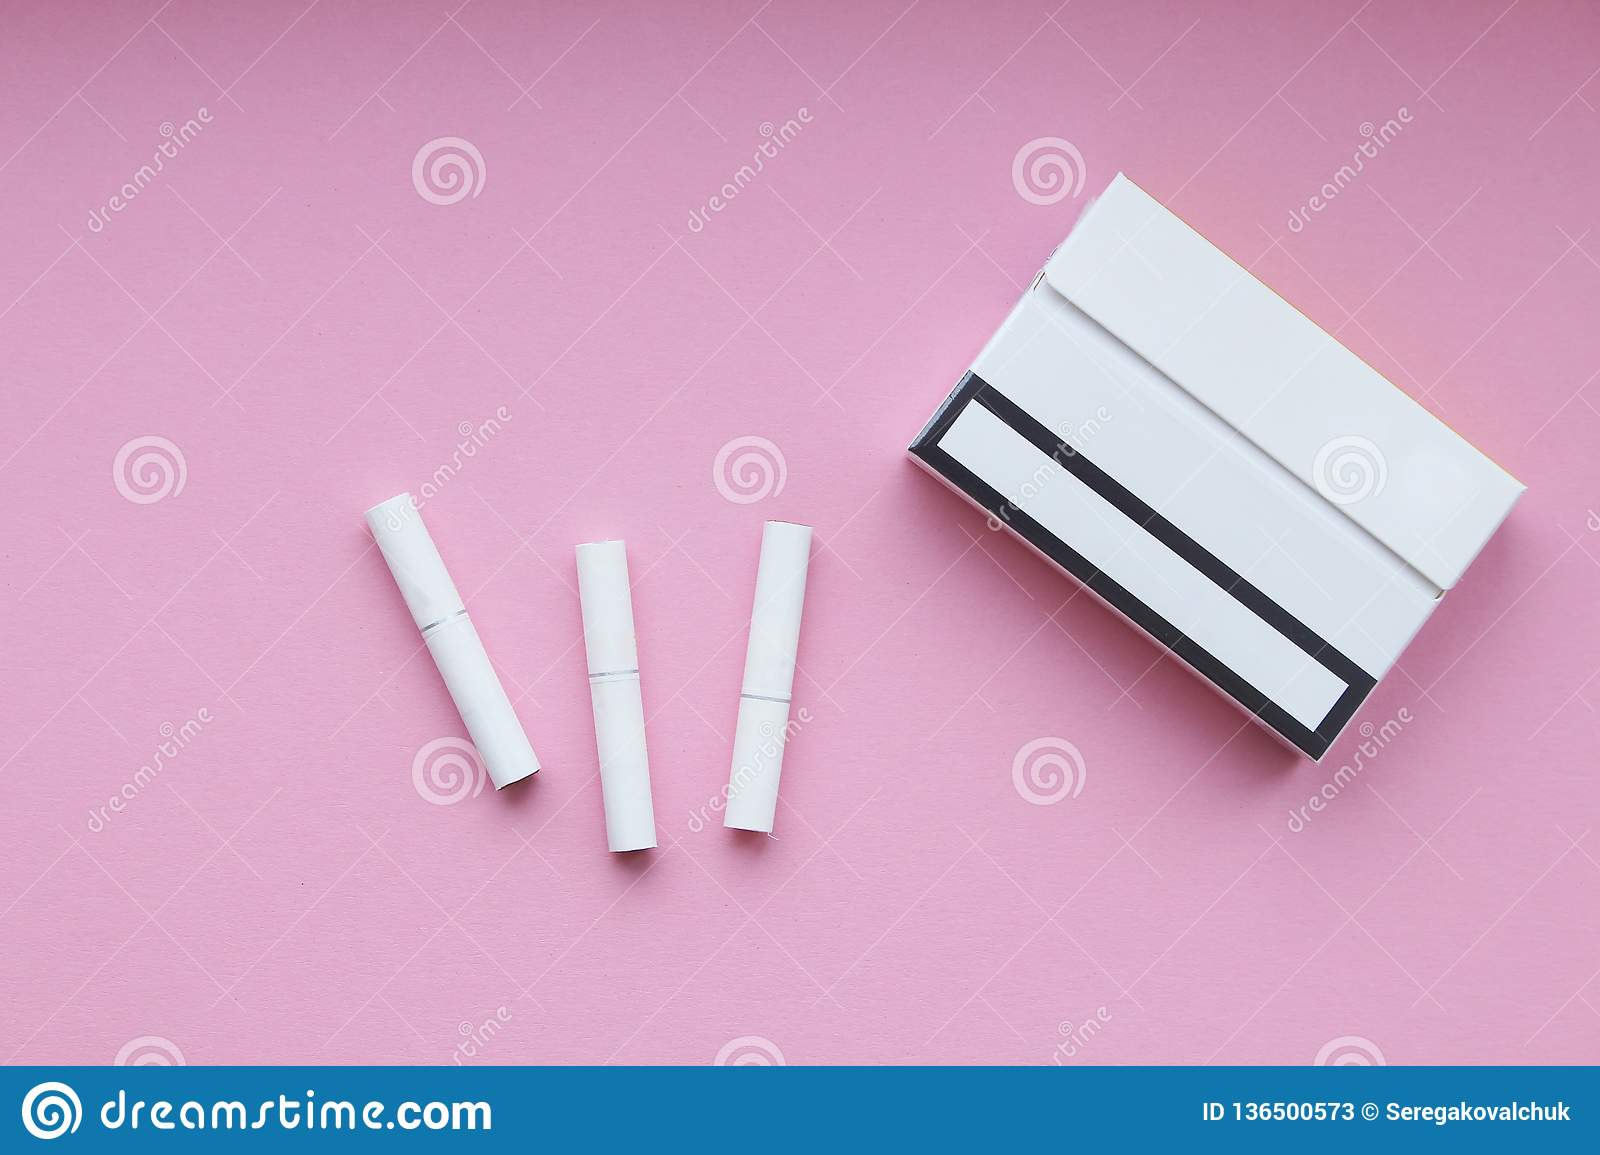 Cigarette sticks and pack on pink background